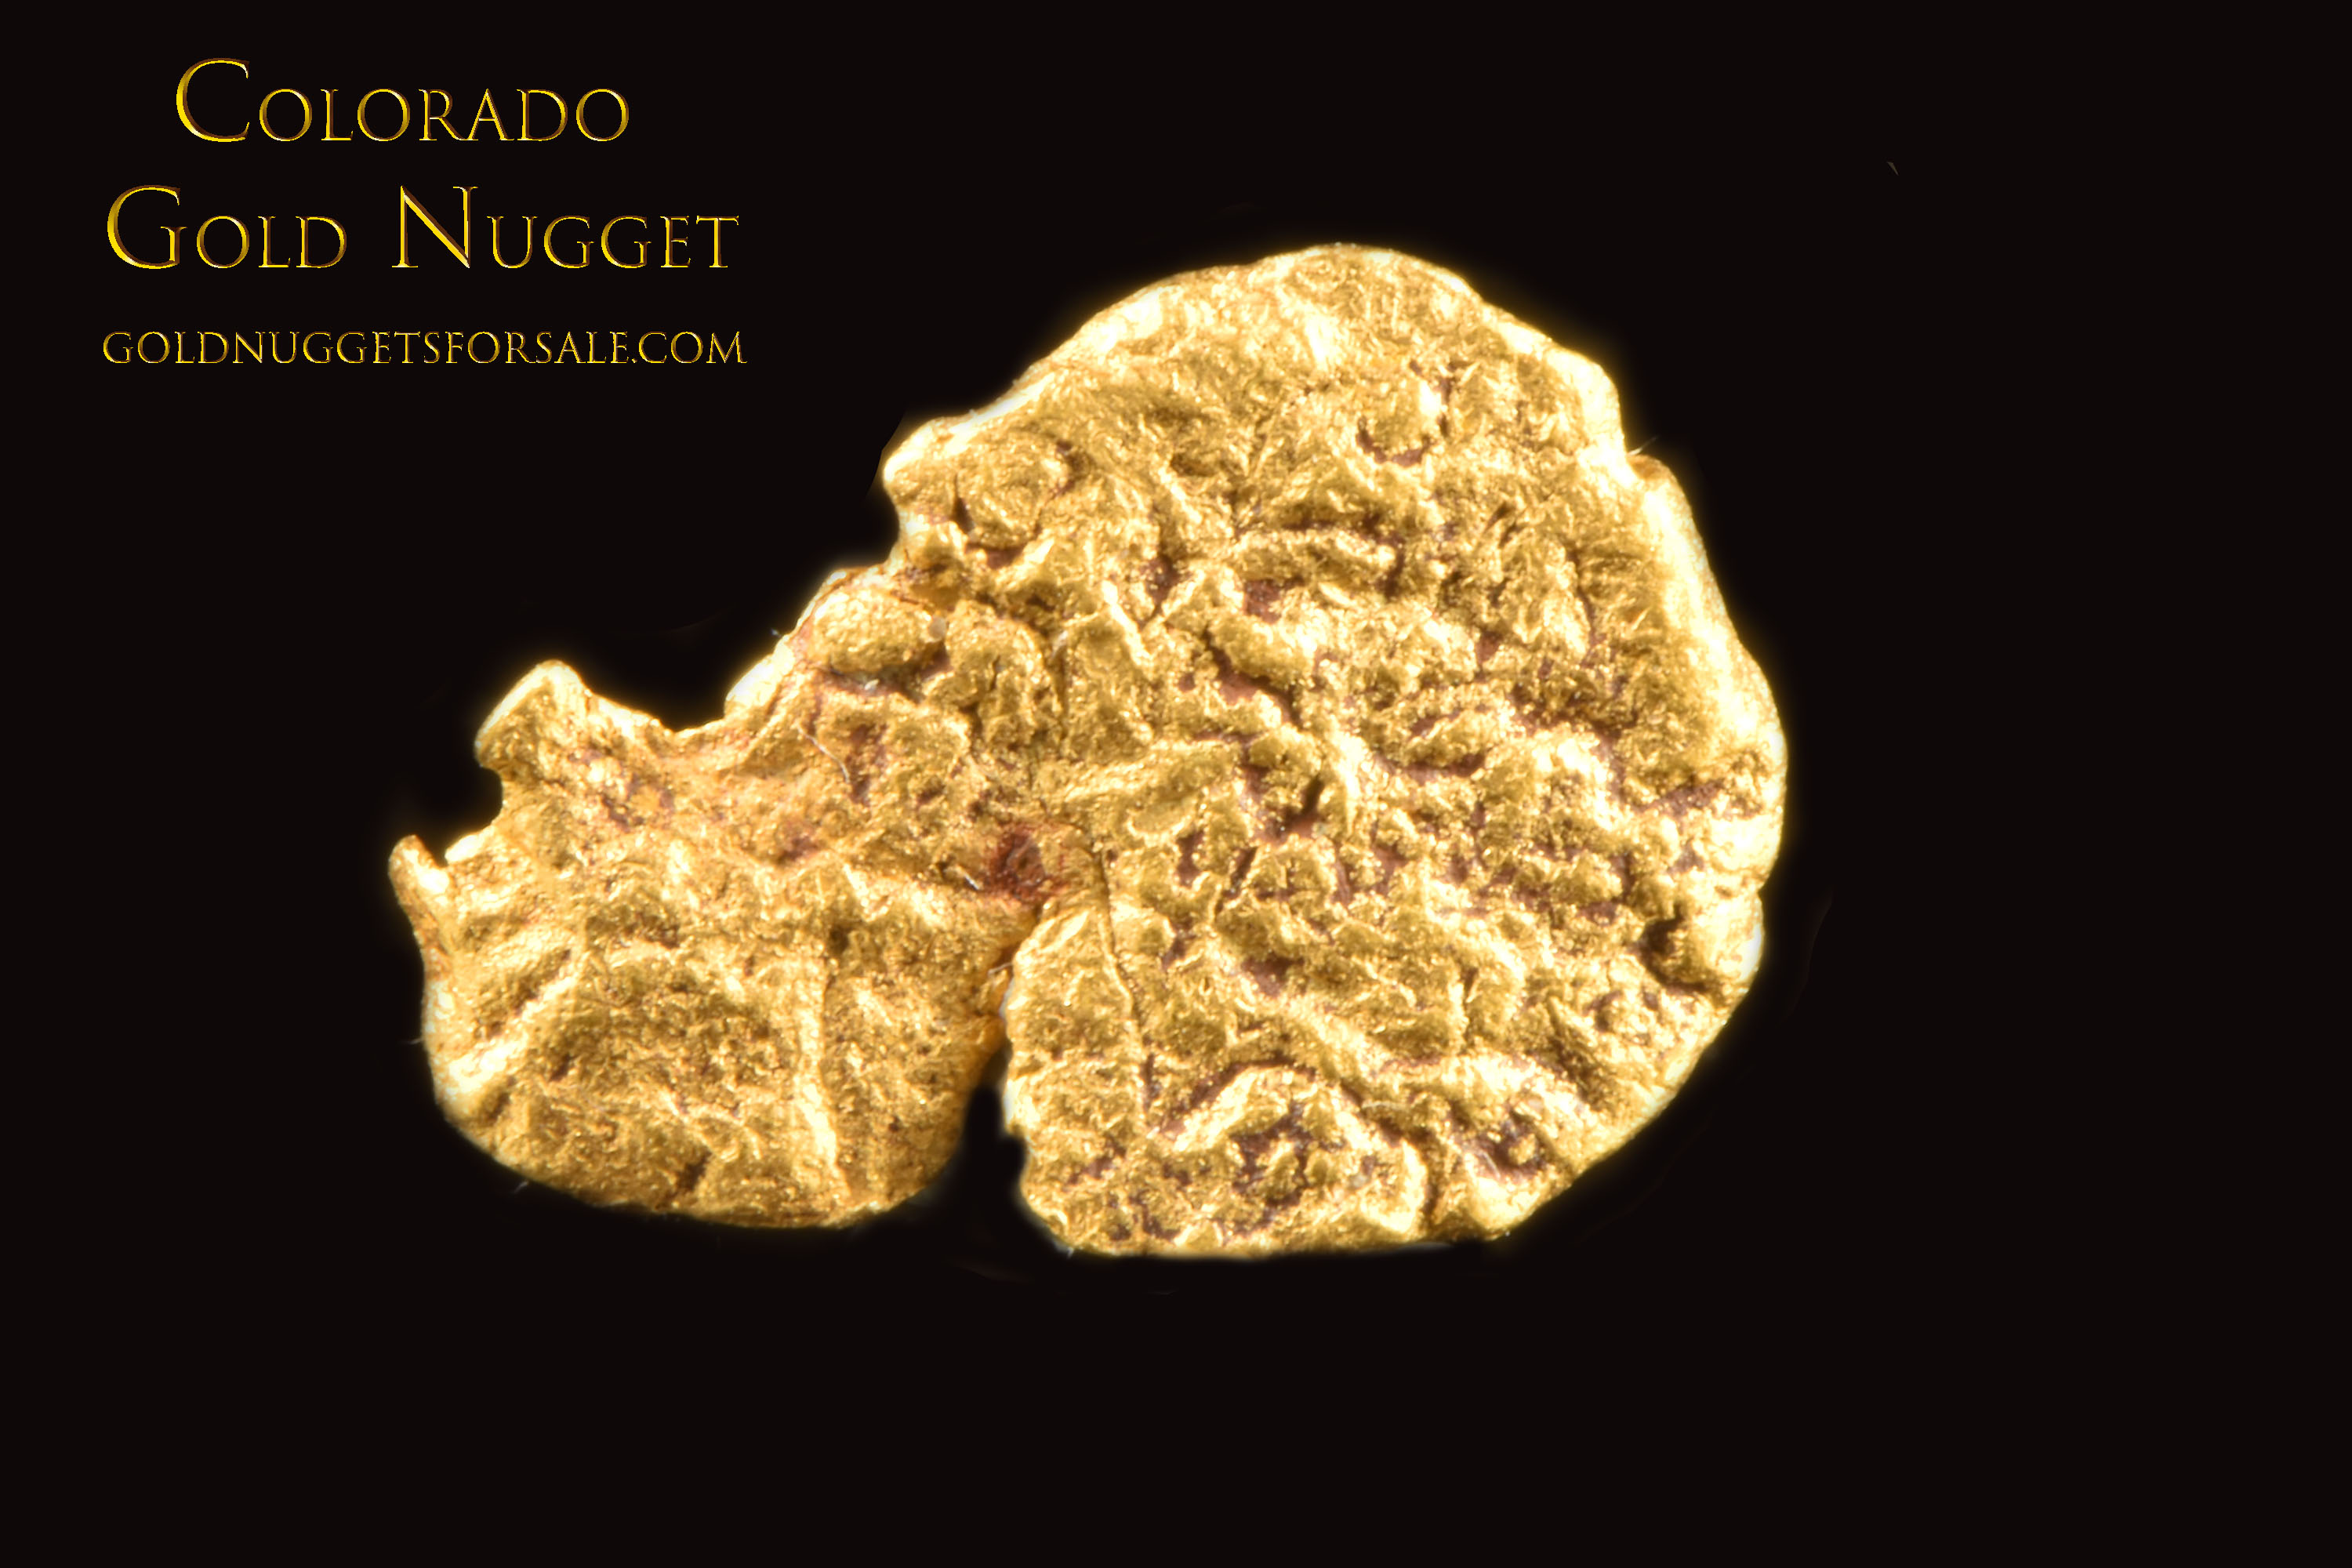 Jewelry/Investment Grade Gold Nugget From Colorado